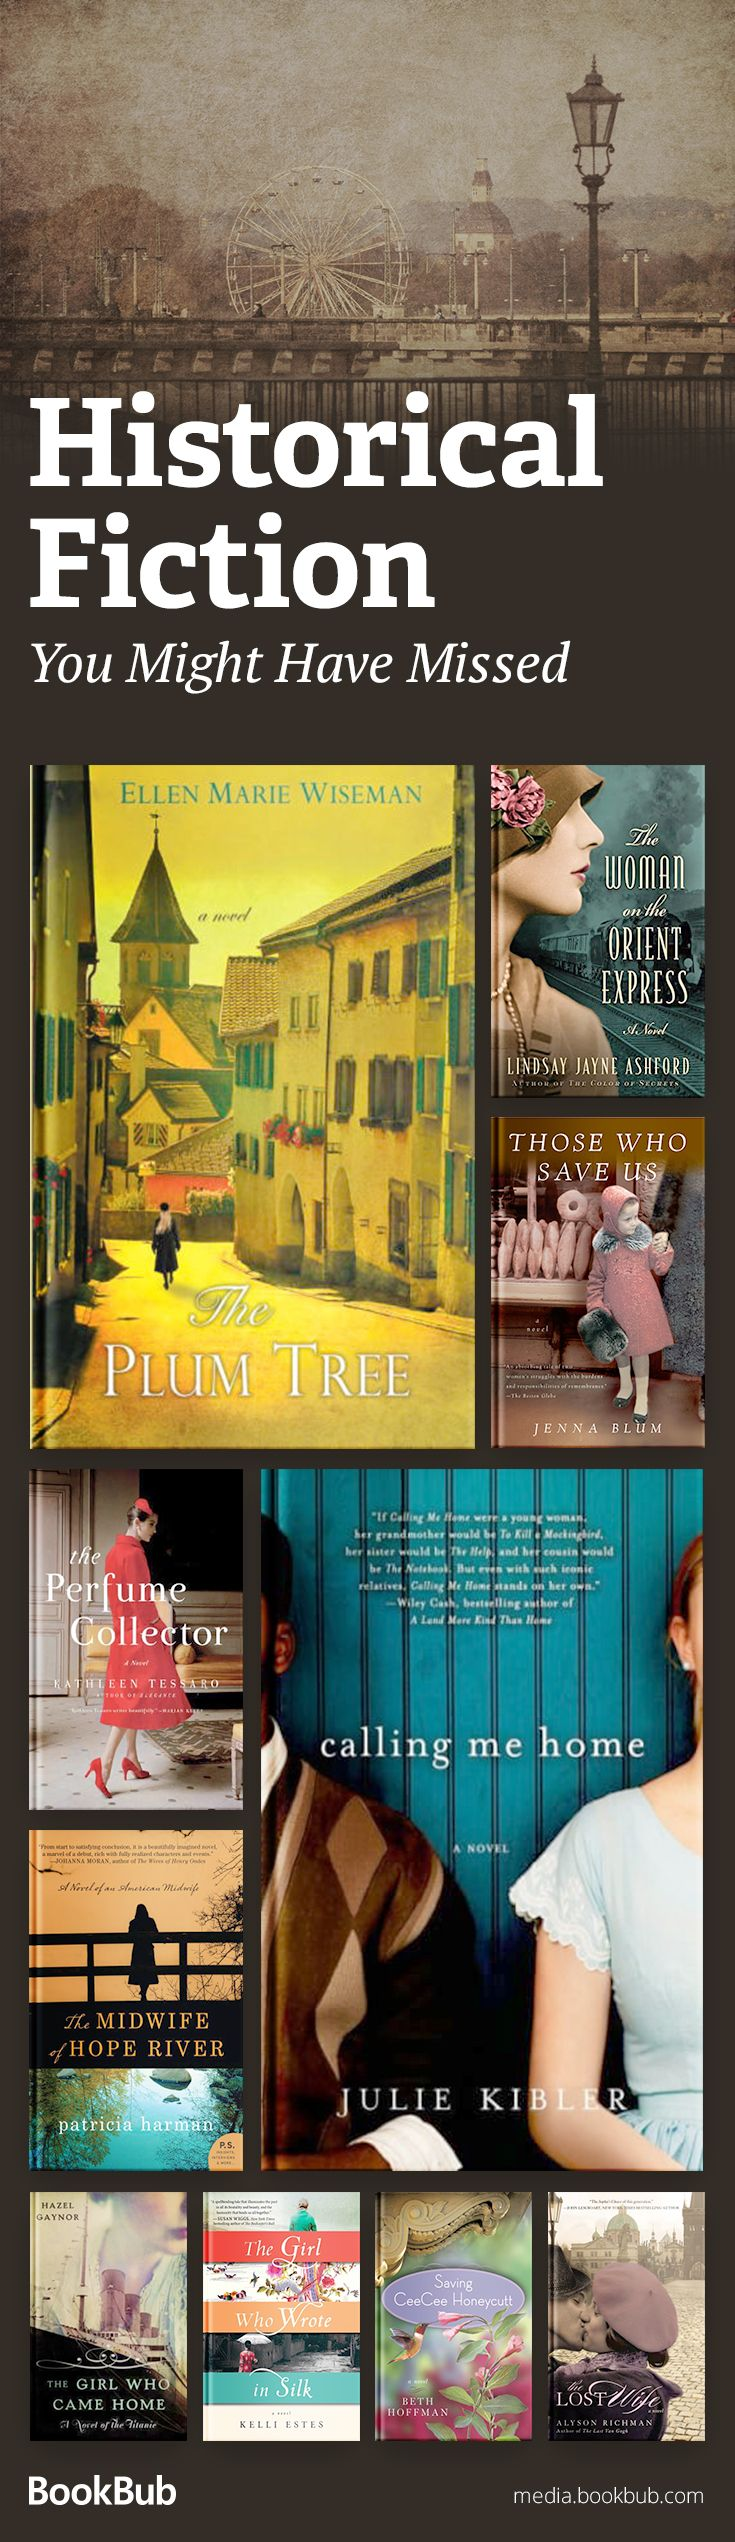 10 historical fiction novels worth reading. These popular books are widely-reviewed. Including great World War II fiction.